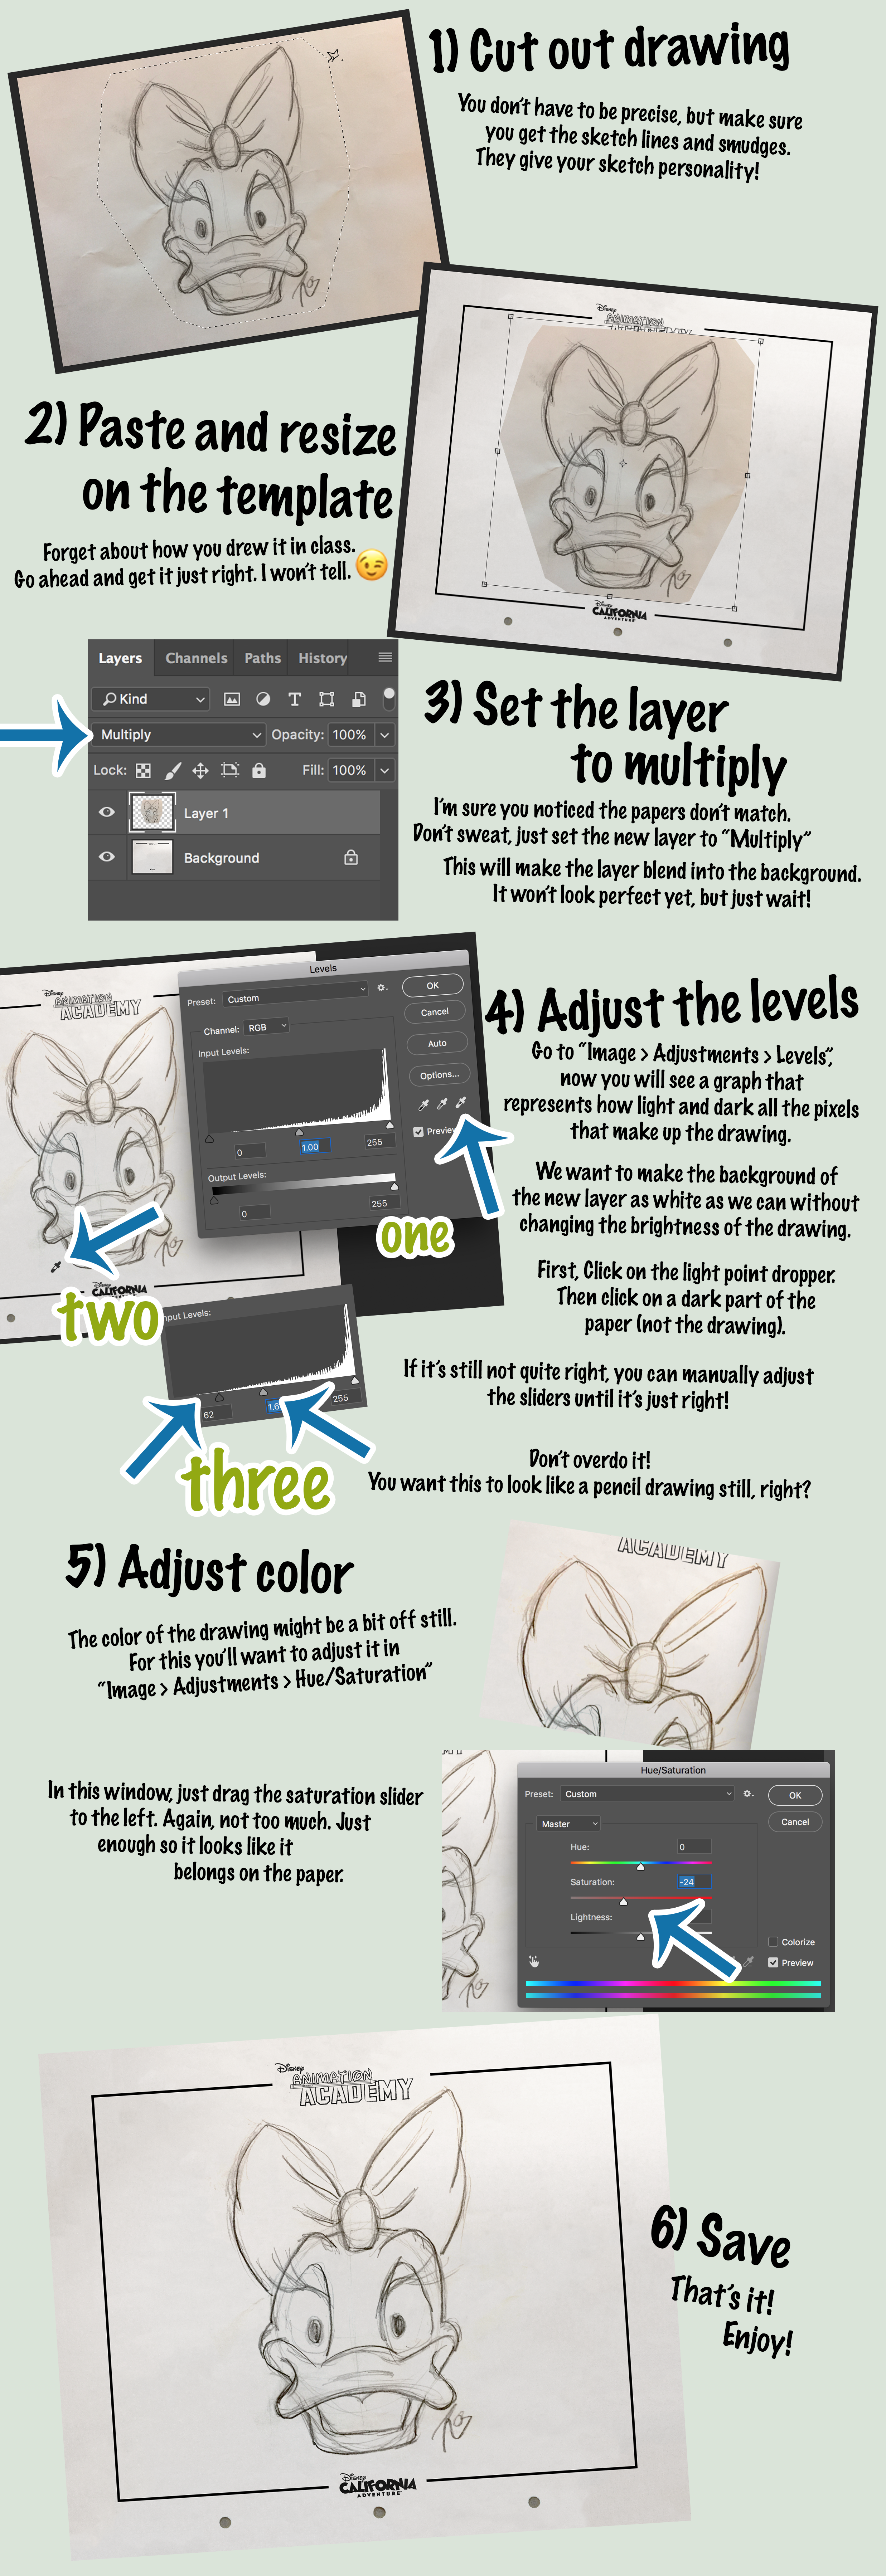 How to Use the Disney's Animation Academy Template